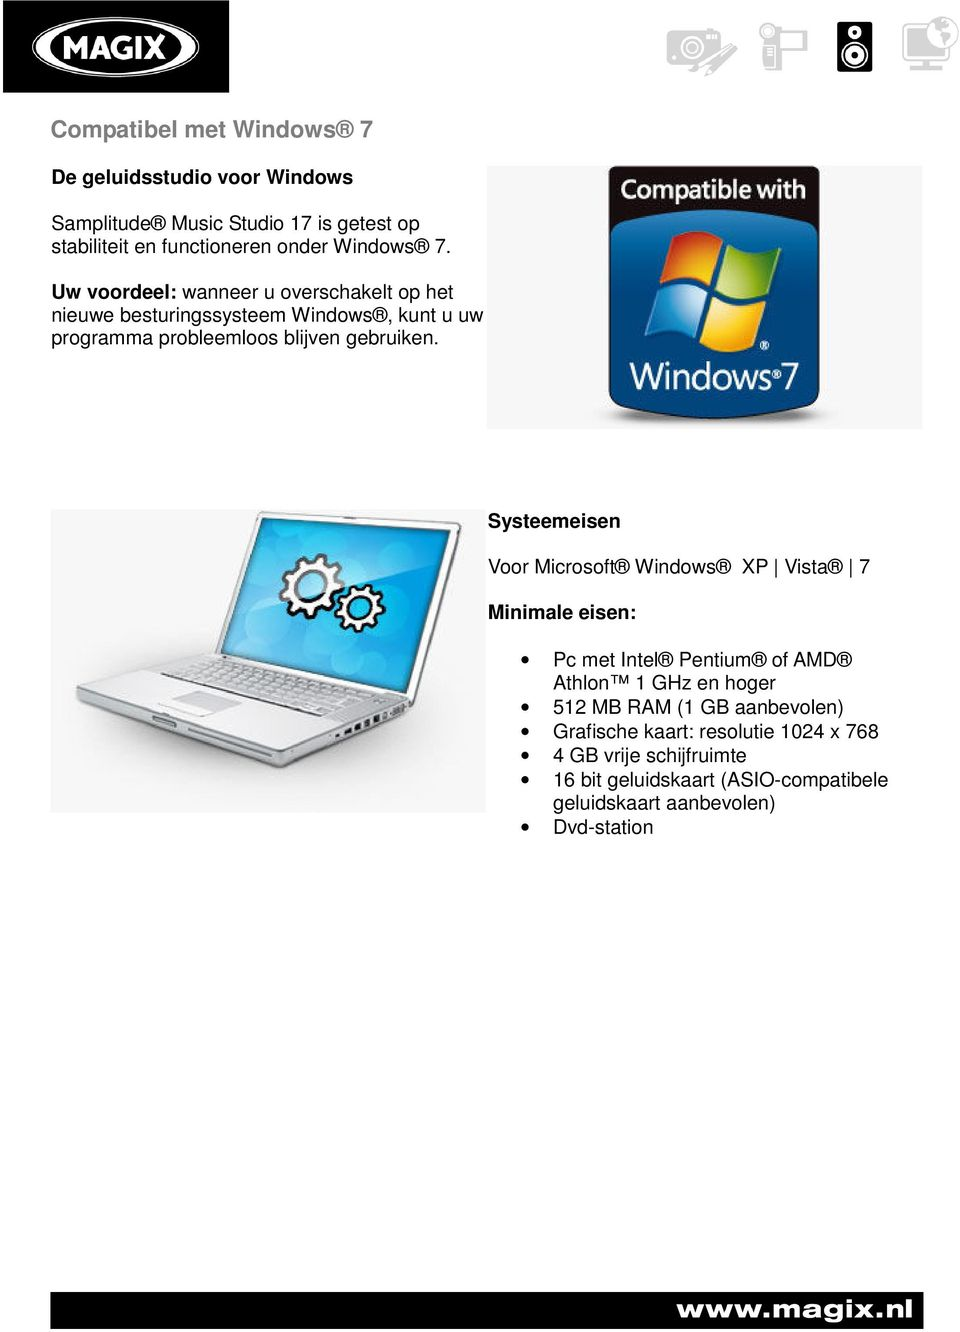 Systeemeisen Voor Microsoft Windows XP Vista 7 Minimale eisen: Pc met Intel Pentium of AMD Athlon 1 GHz en hoger 512 MB RAM (1 GB